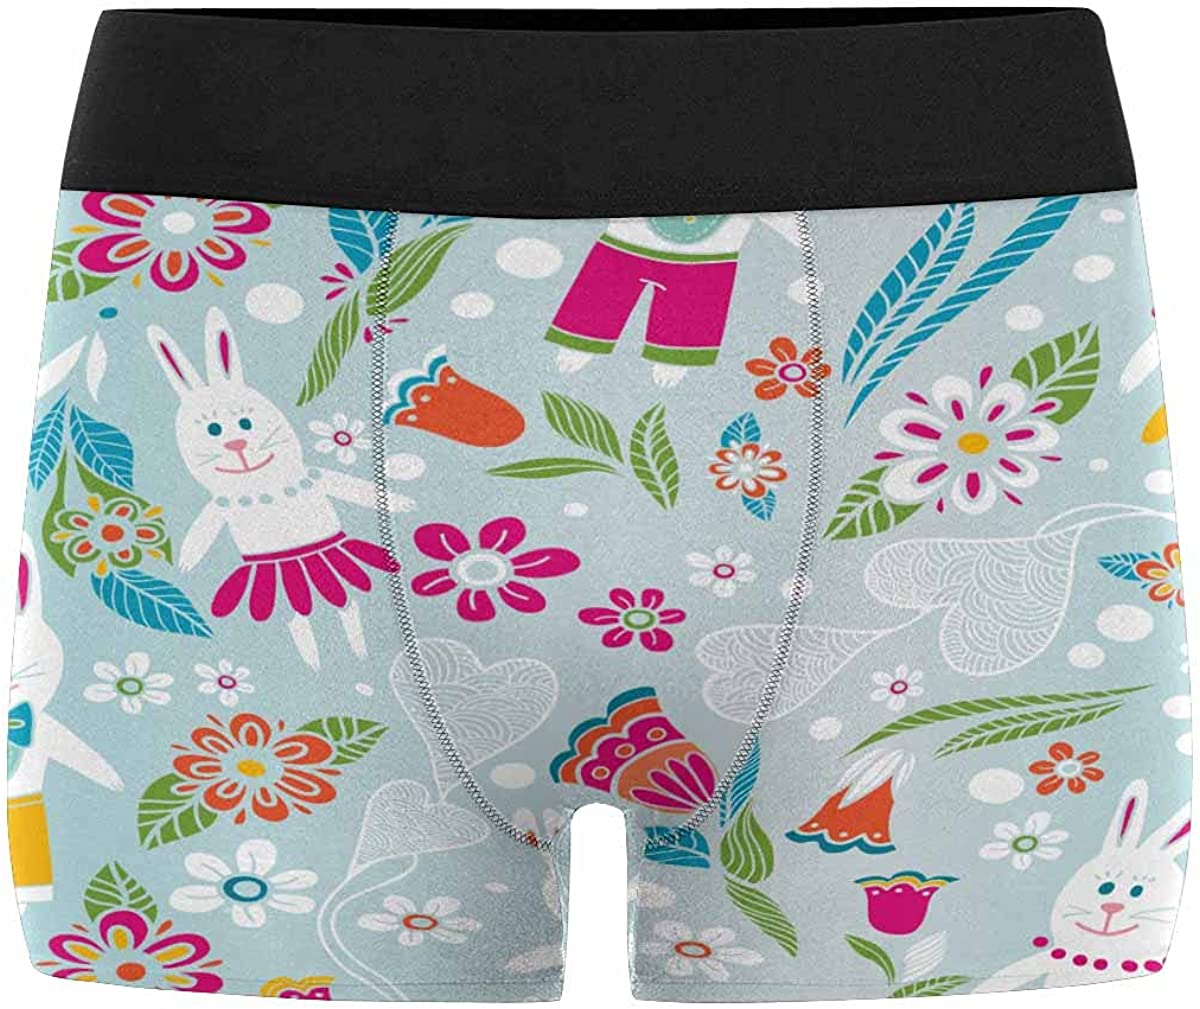 InterestPrint Youth Boy's Stylish Underpants Lightweight Classic Fit Boxer Briefs Cartoon Pattern with Rabbits